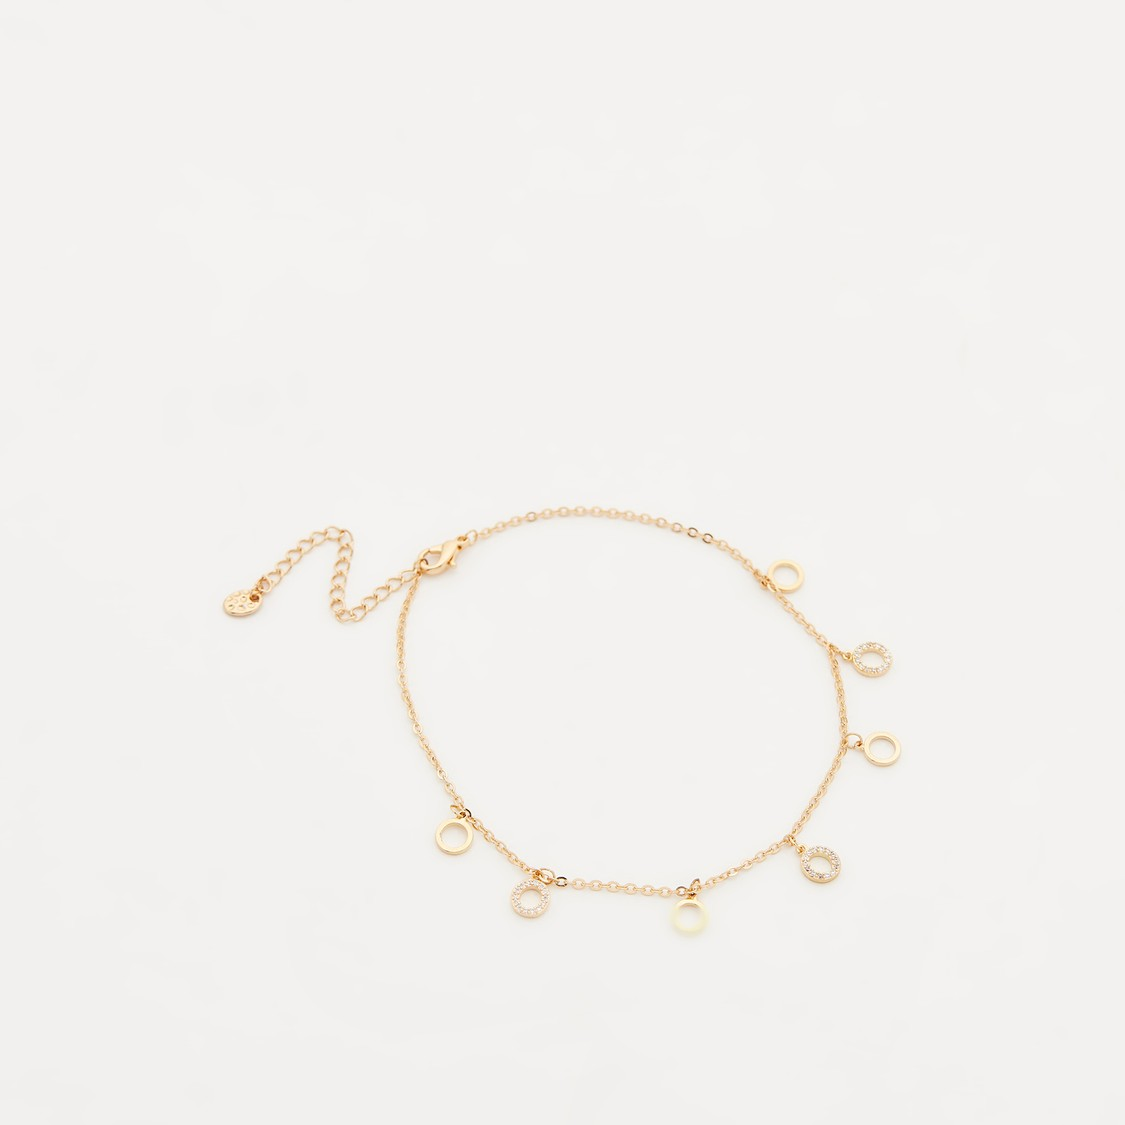 Studded Charm Anklet with Lobster Clasp Closure and Extra Loops